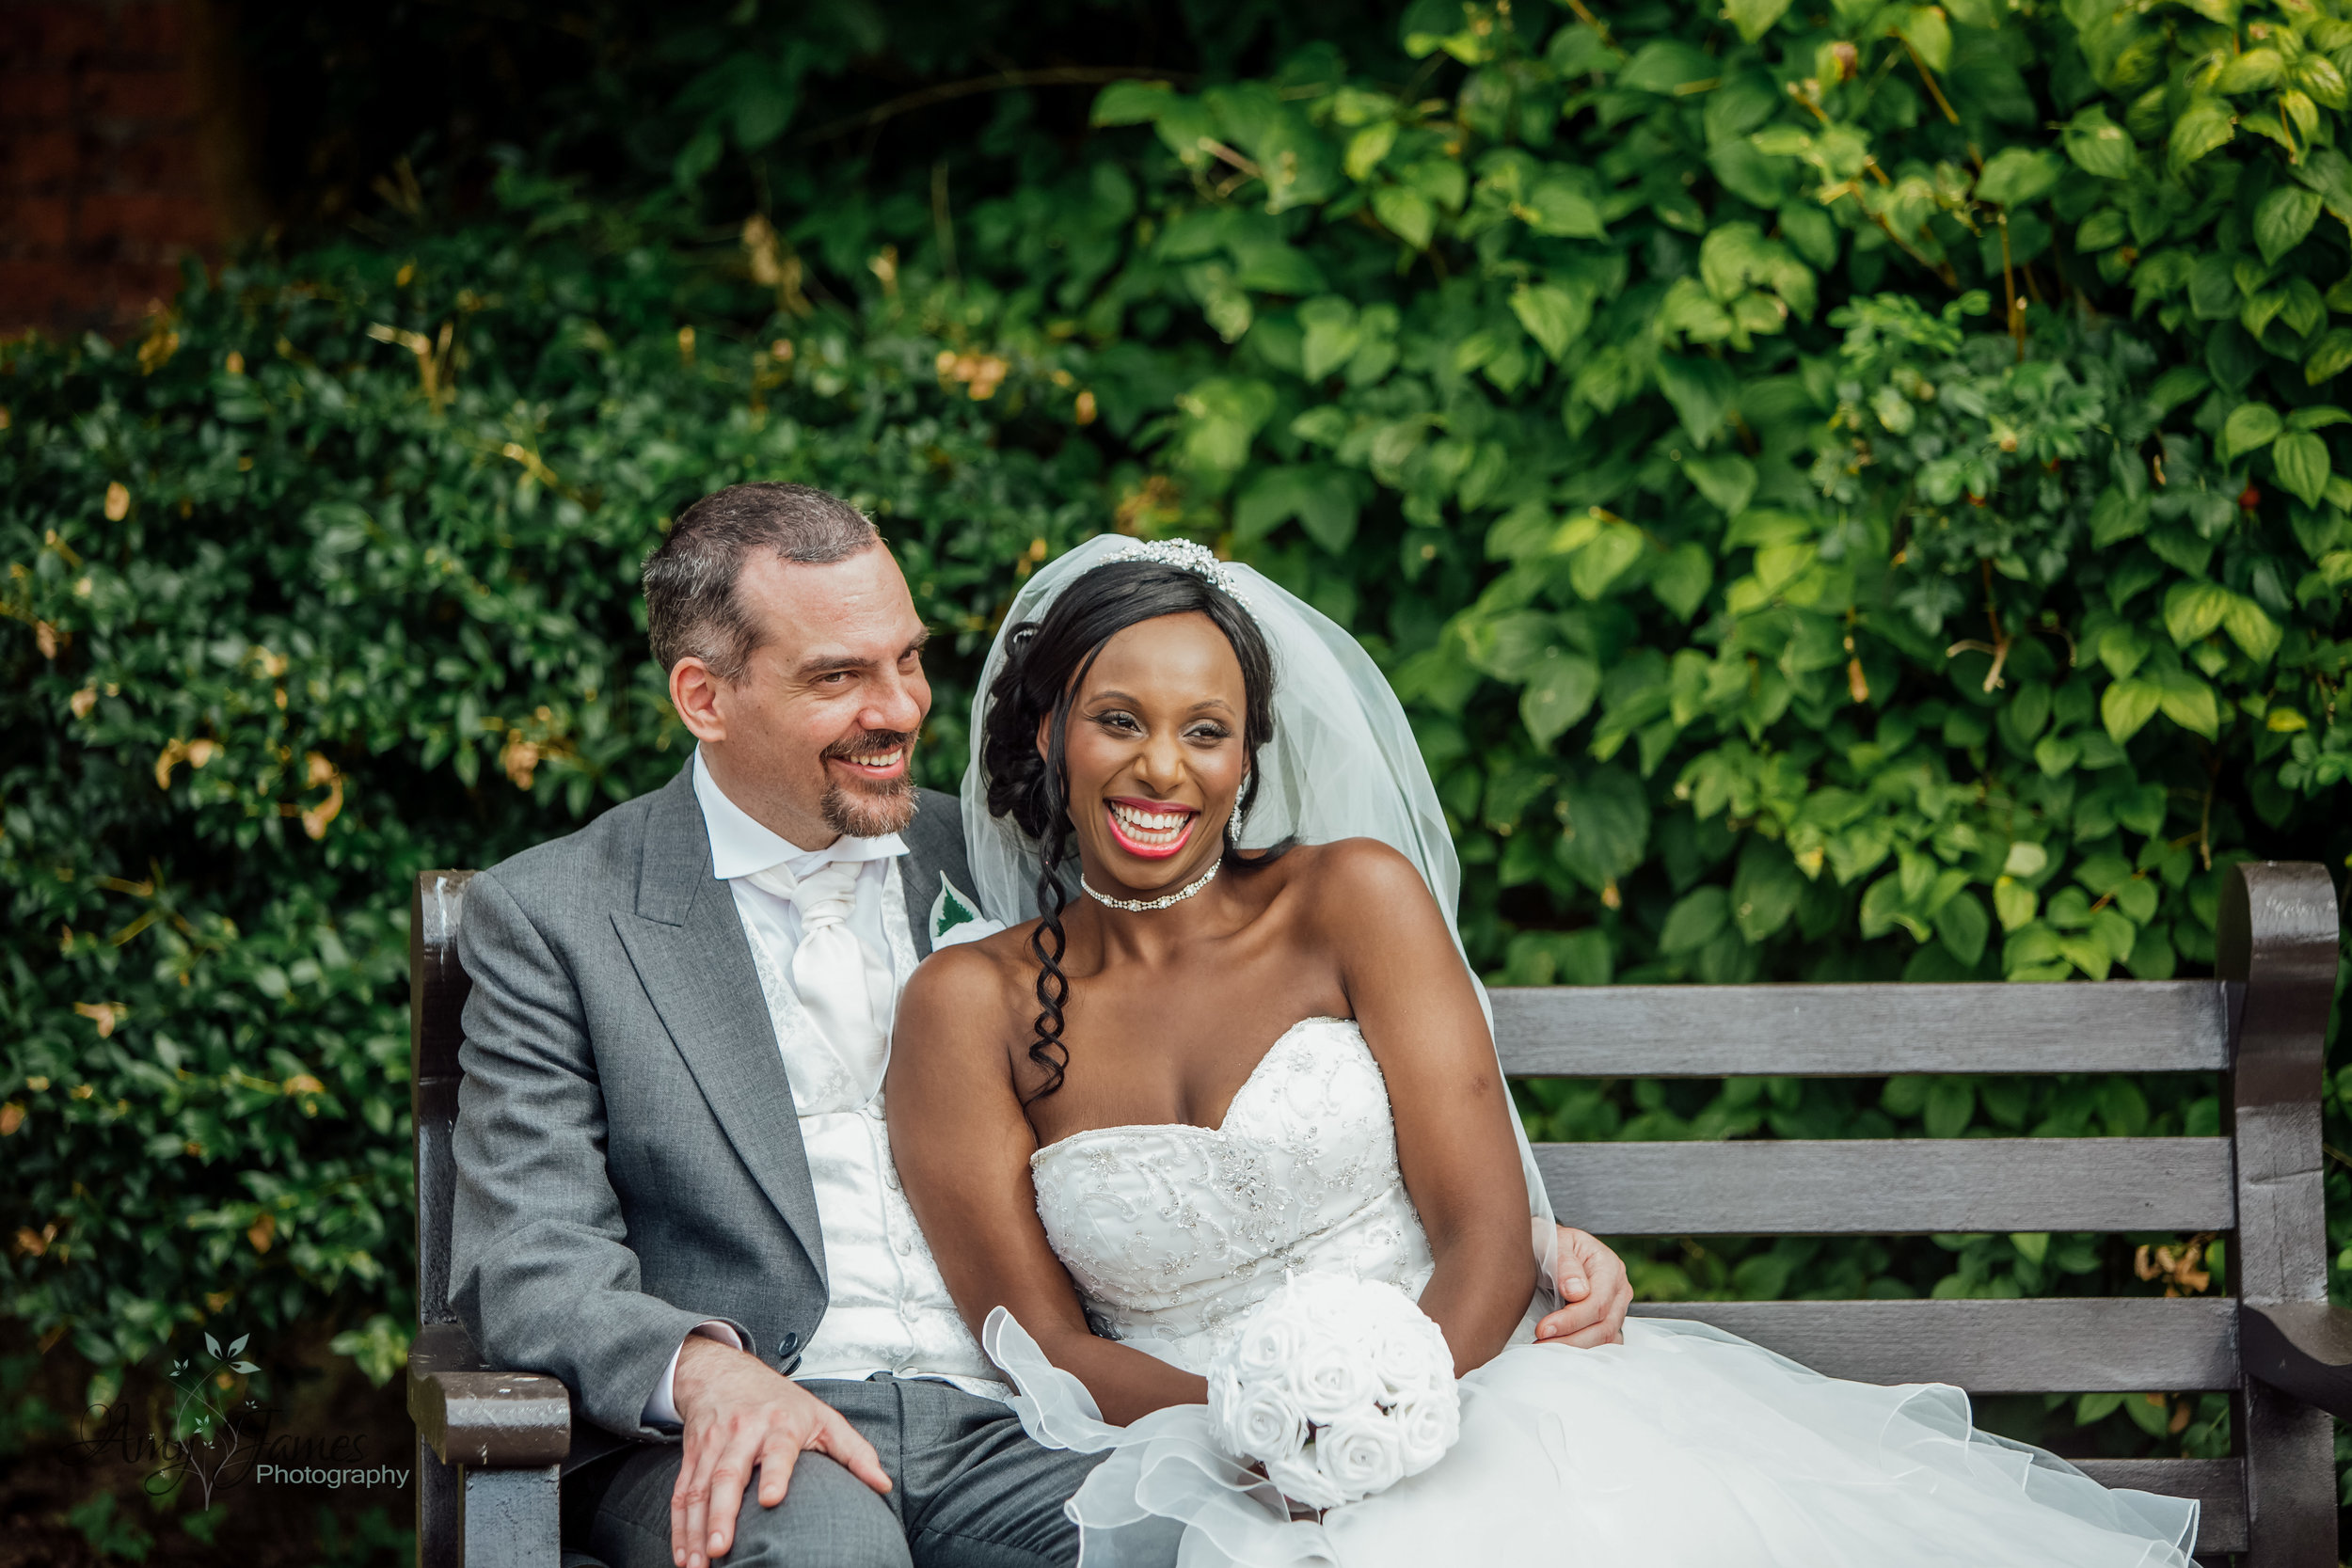 Bride and Groom at Four Season Hotel Hampshire Wedding by Amy James Photography - Documentary wedding photographer for Hamshire and Surrey